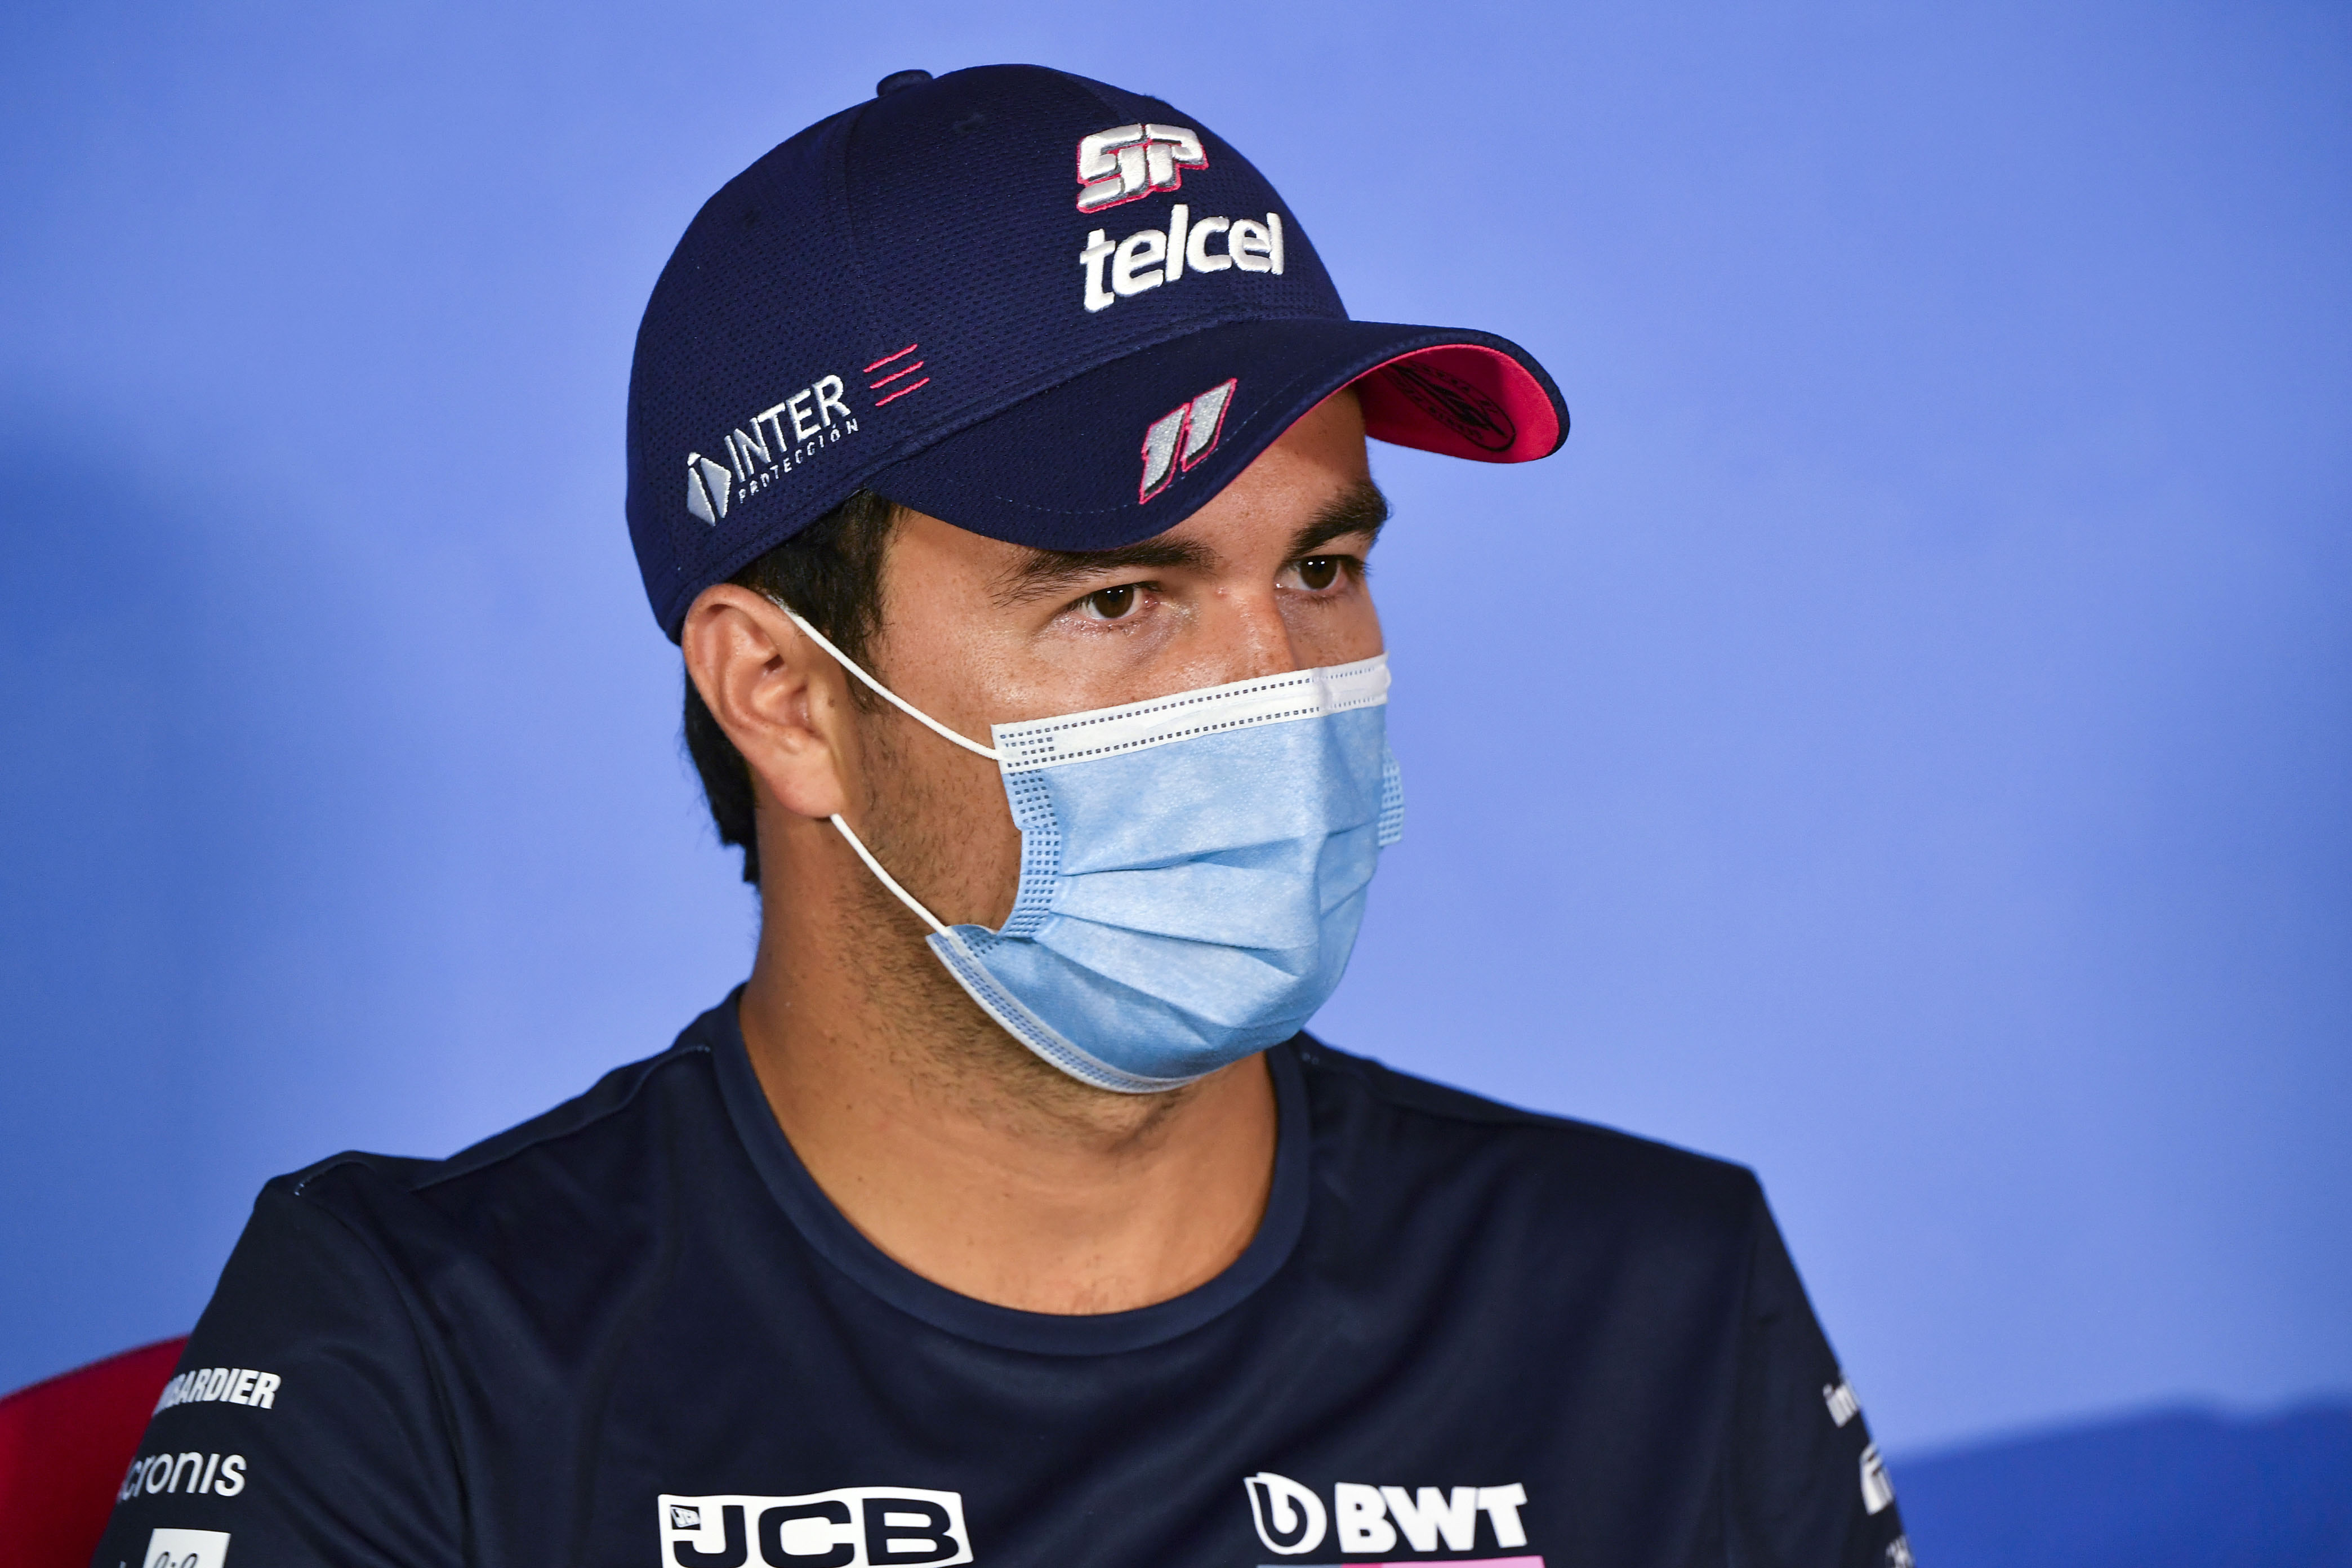 Formula One driver Sergio Pérez talks at a press conference on July 2 in Spielberg, Austria.